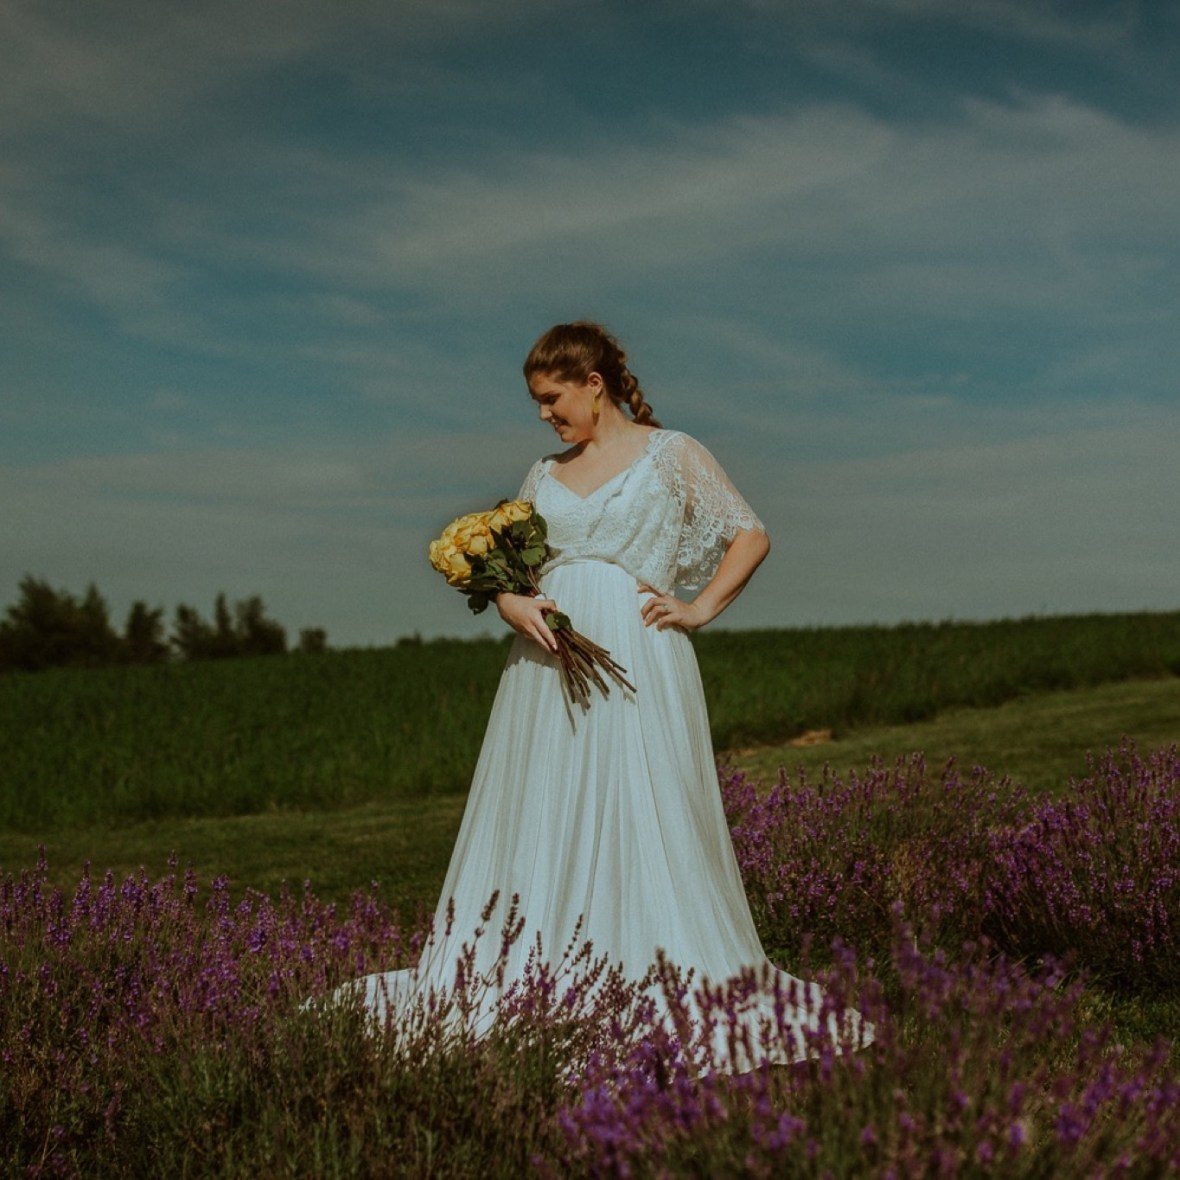 05_WCTM3466ab_Lavender_Farm_Phillips_Clothier_Wedding_Kimberly